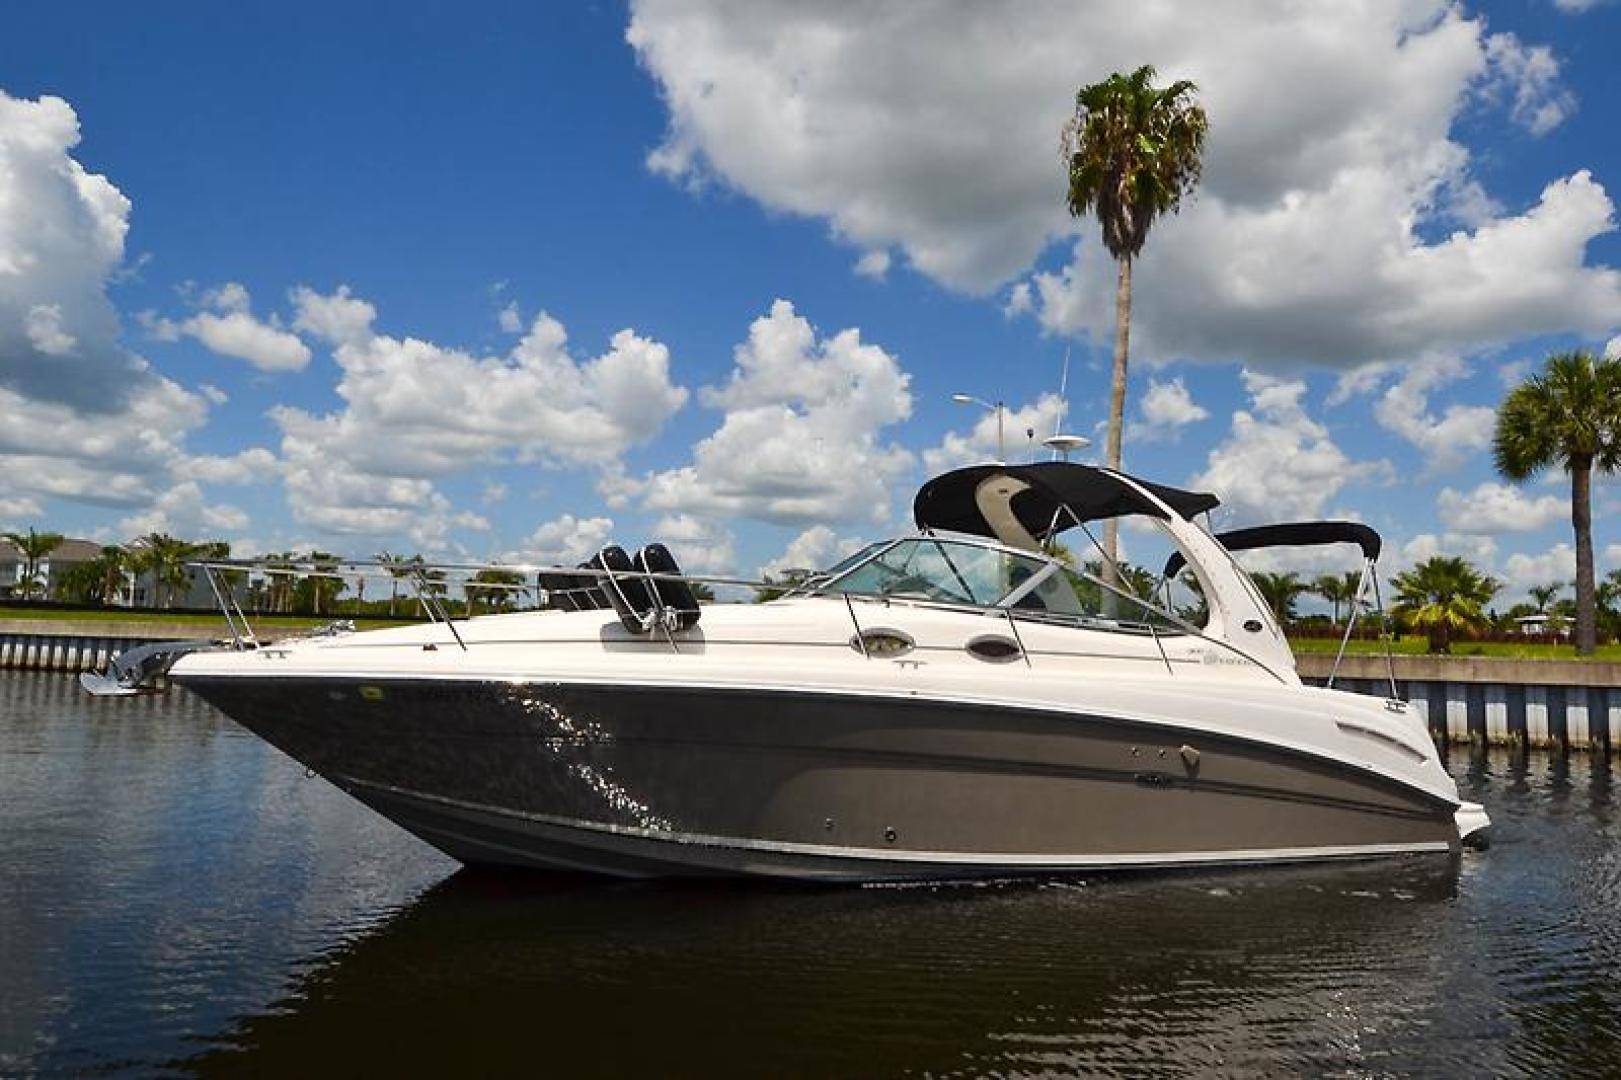 2006 Sea Ray 300 Sundancer-19-2.jpg